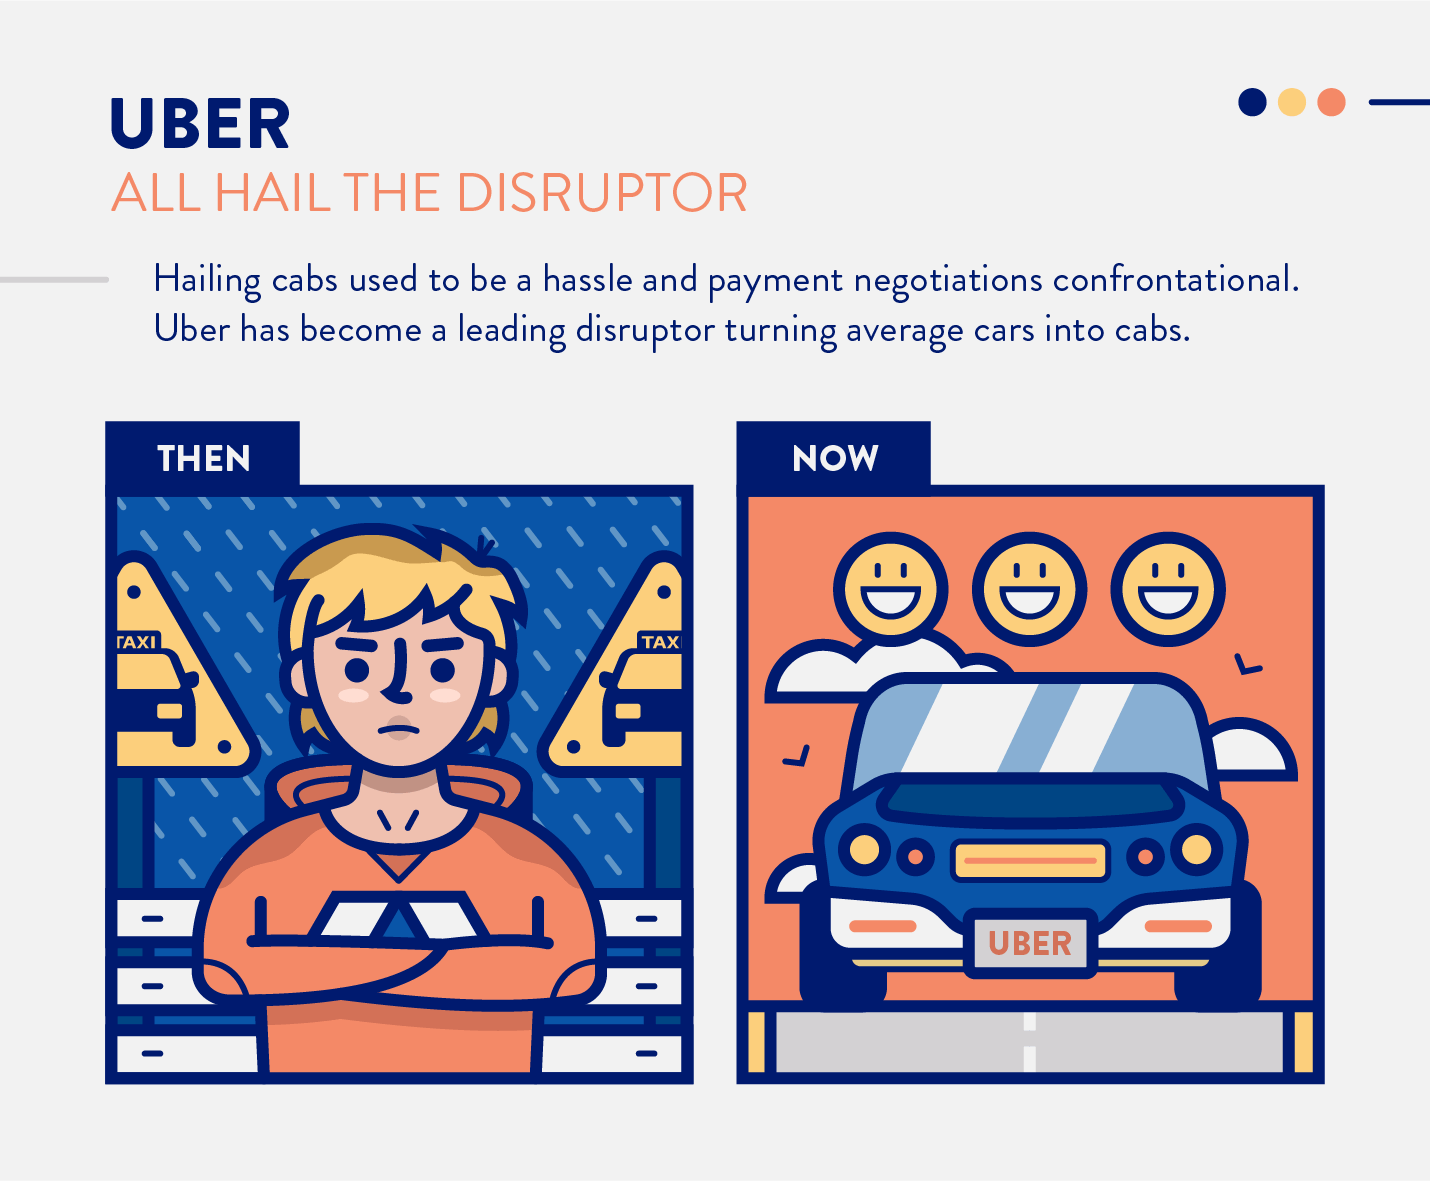 How uber disrupted taxis of the past and improved the user experience